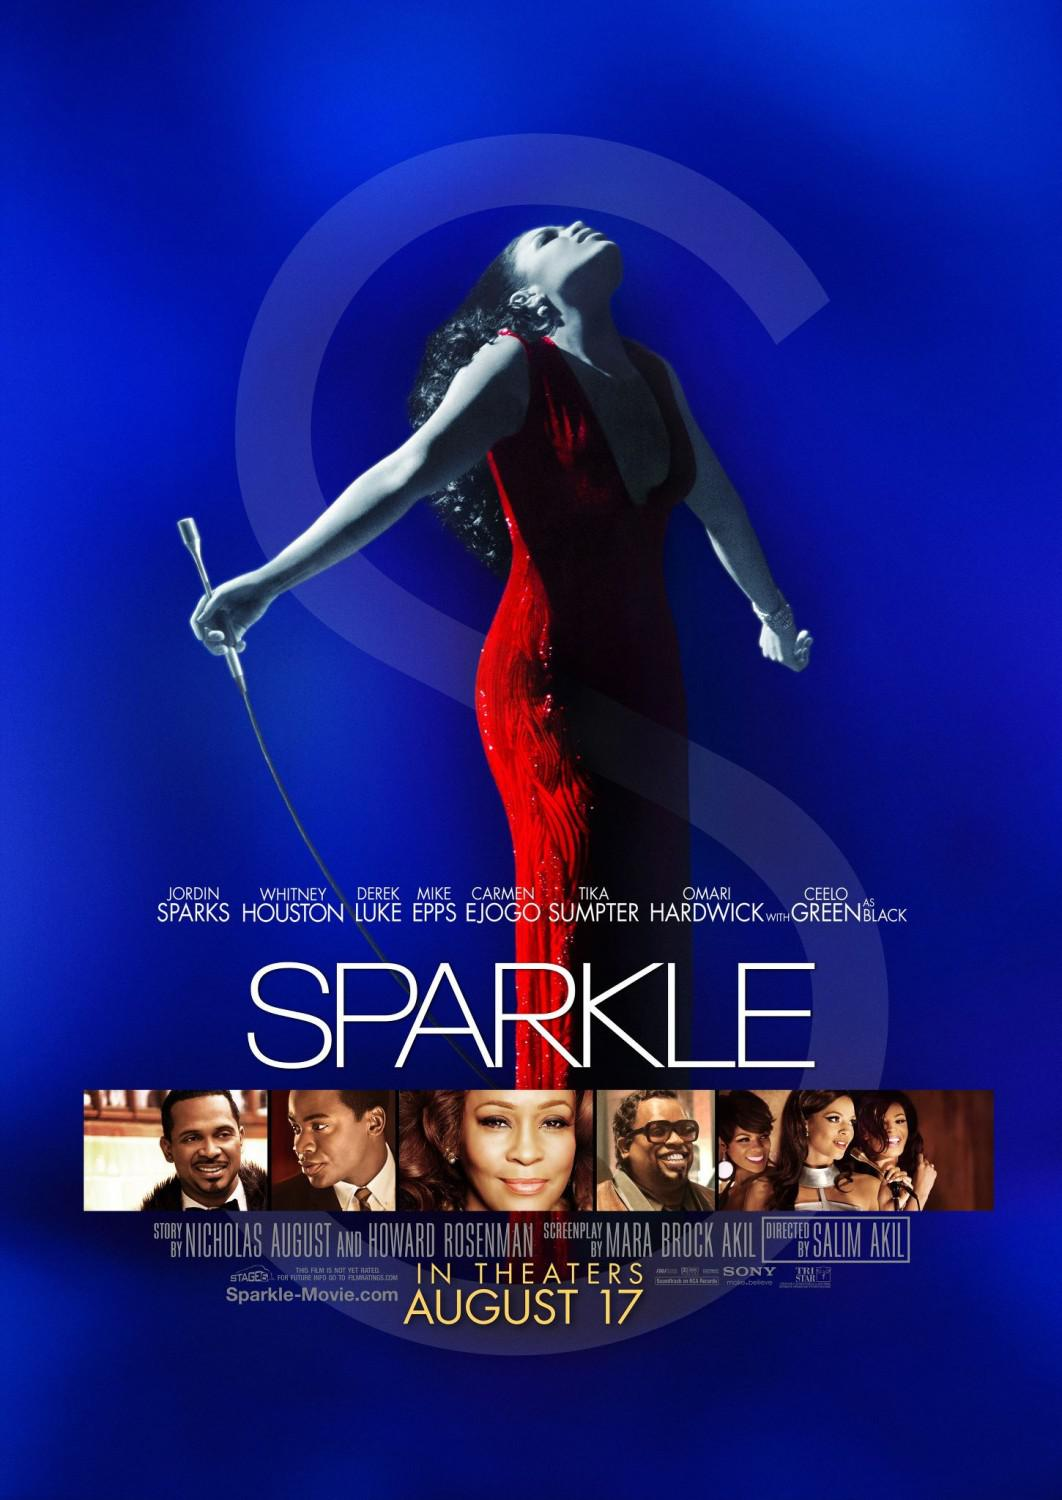 Sparkle - film poster - Jordin Sparks - Whitney Houston - Derek Luke - Mike Epps - Carmen Ejogo - Tika Sumpter - Omari Hardwick - Ceelo Green as Black